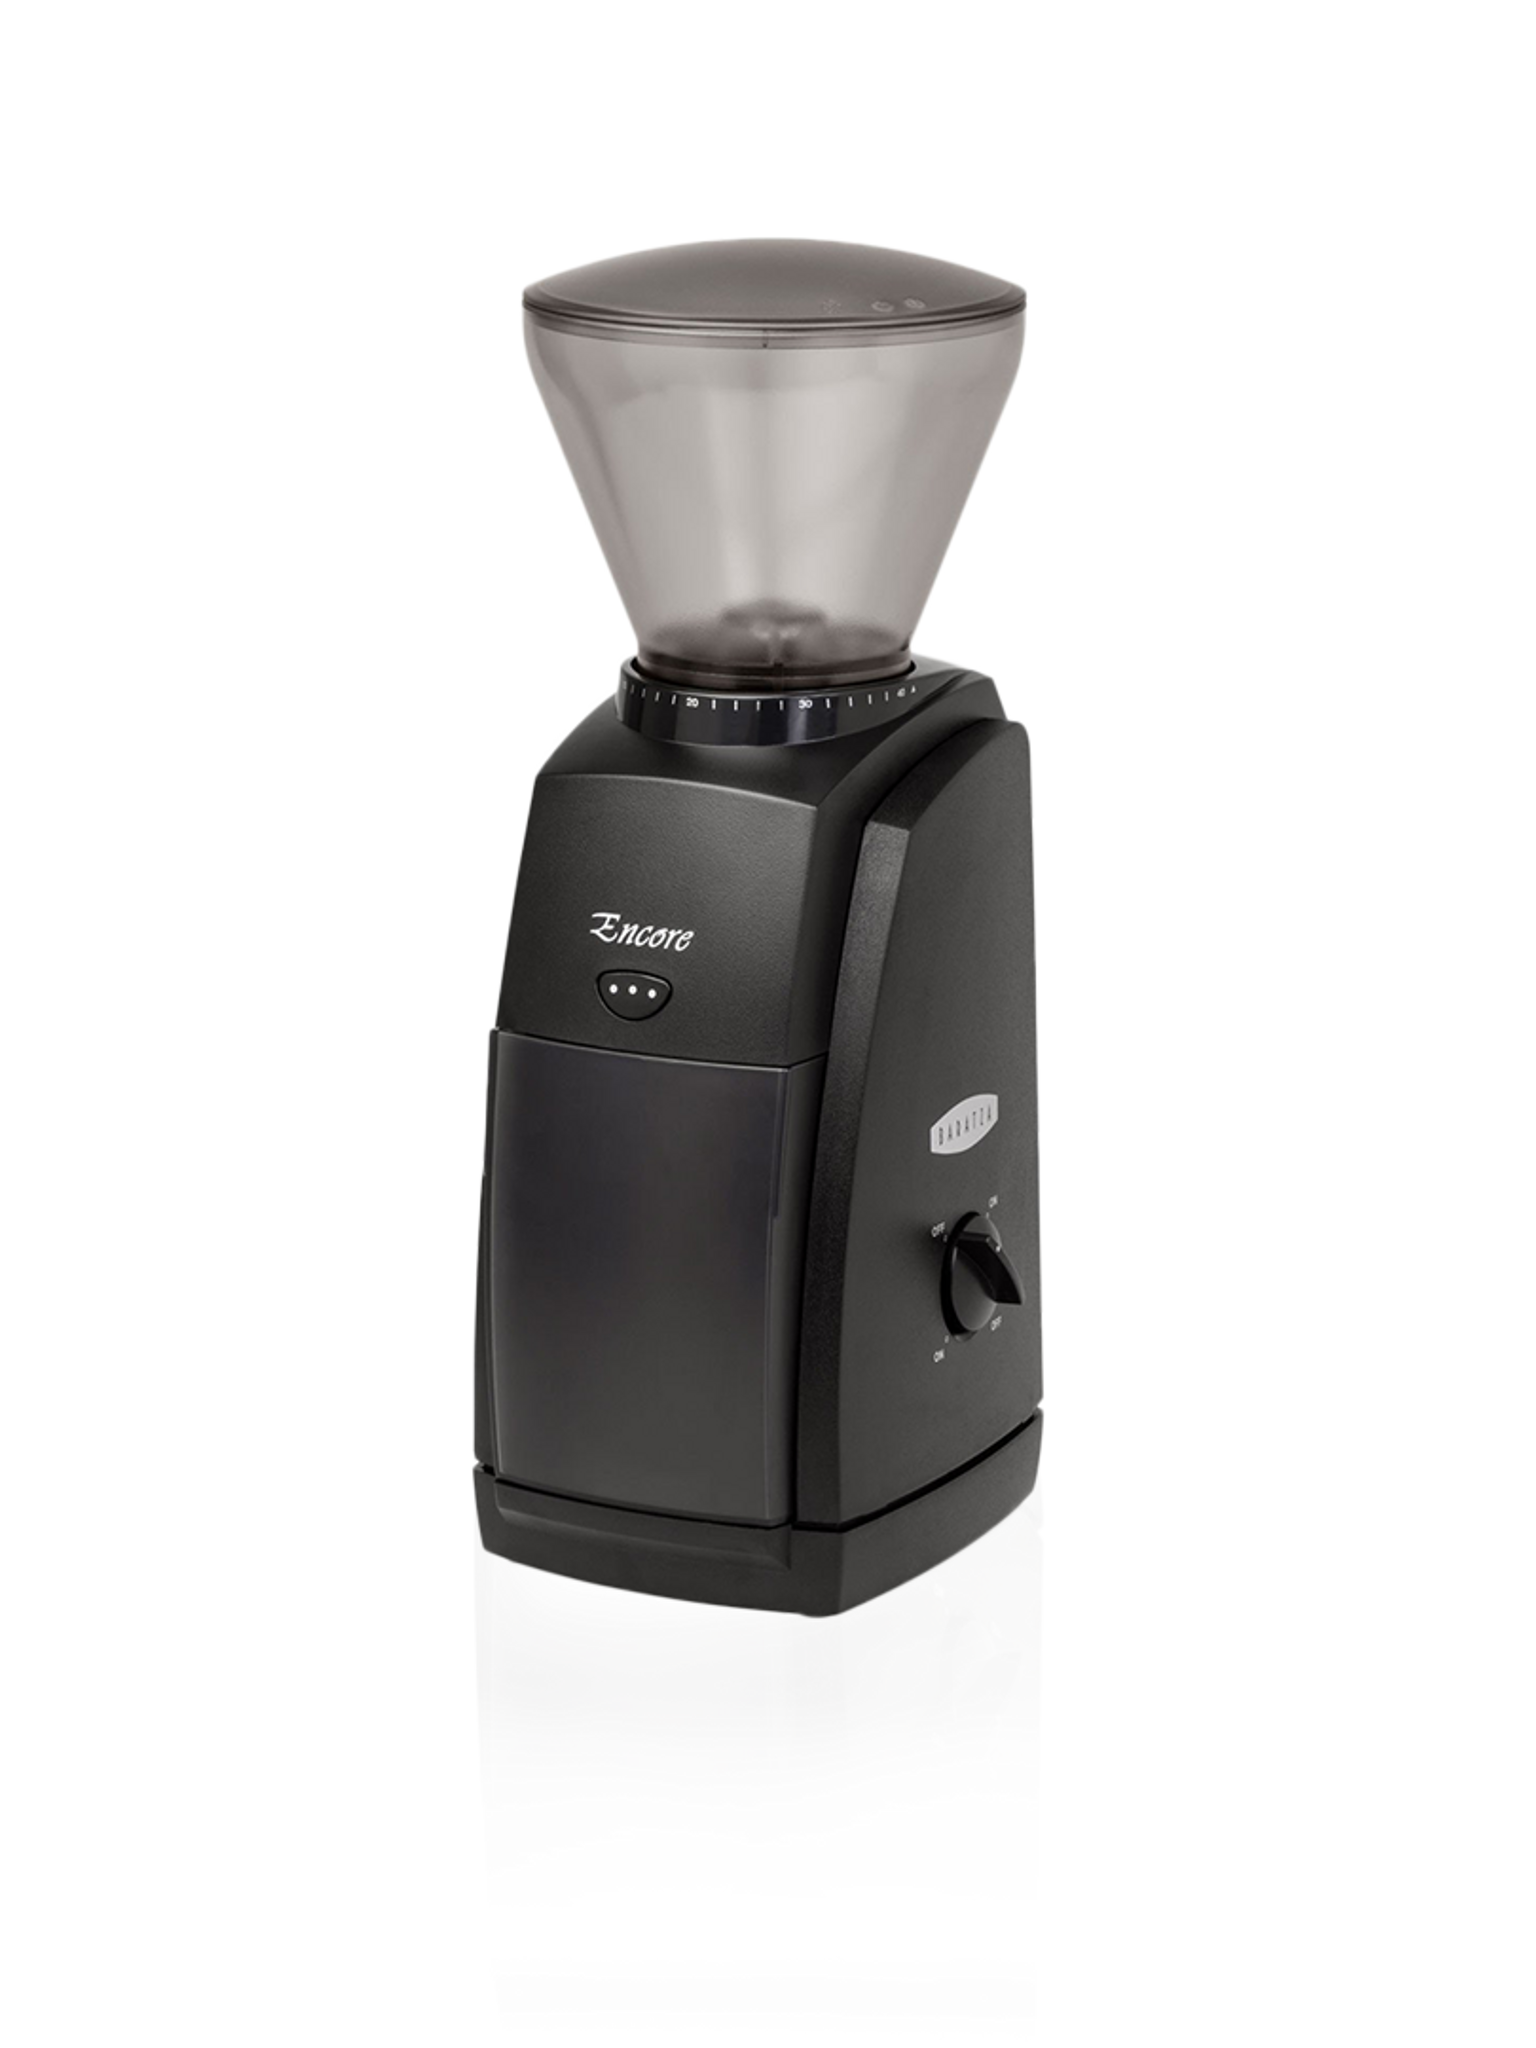 Buy Encore Commercial Grade Grinder With 40mm Conical Burrs Paired With Macro and Micro Grind Adjustments